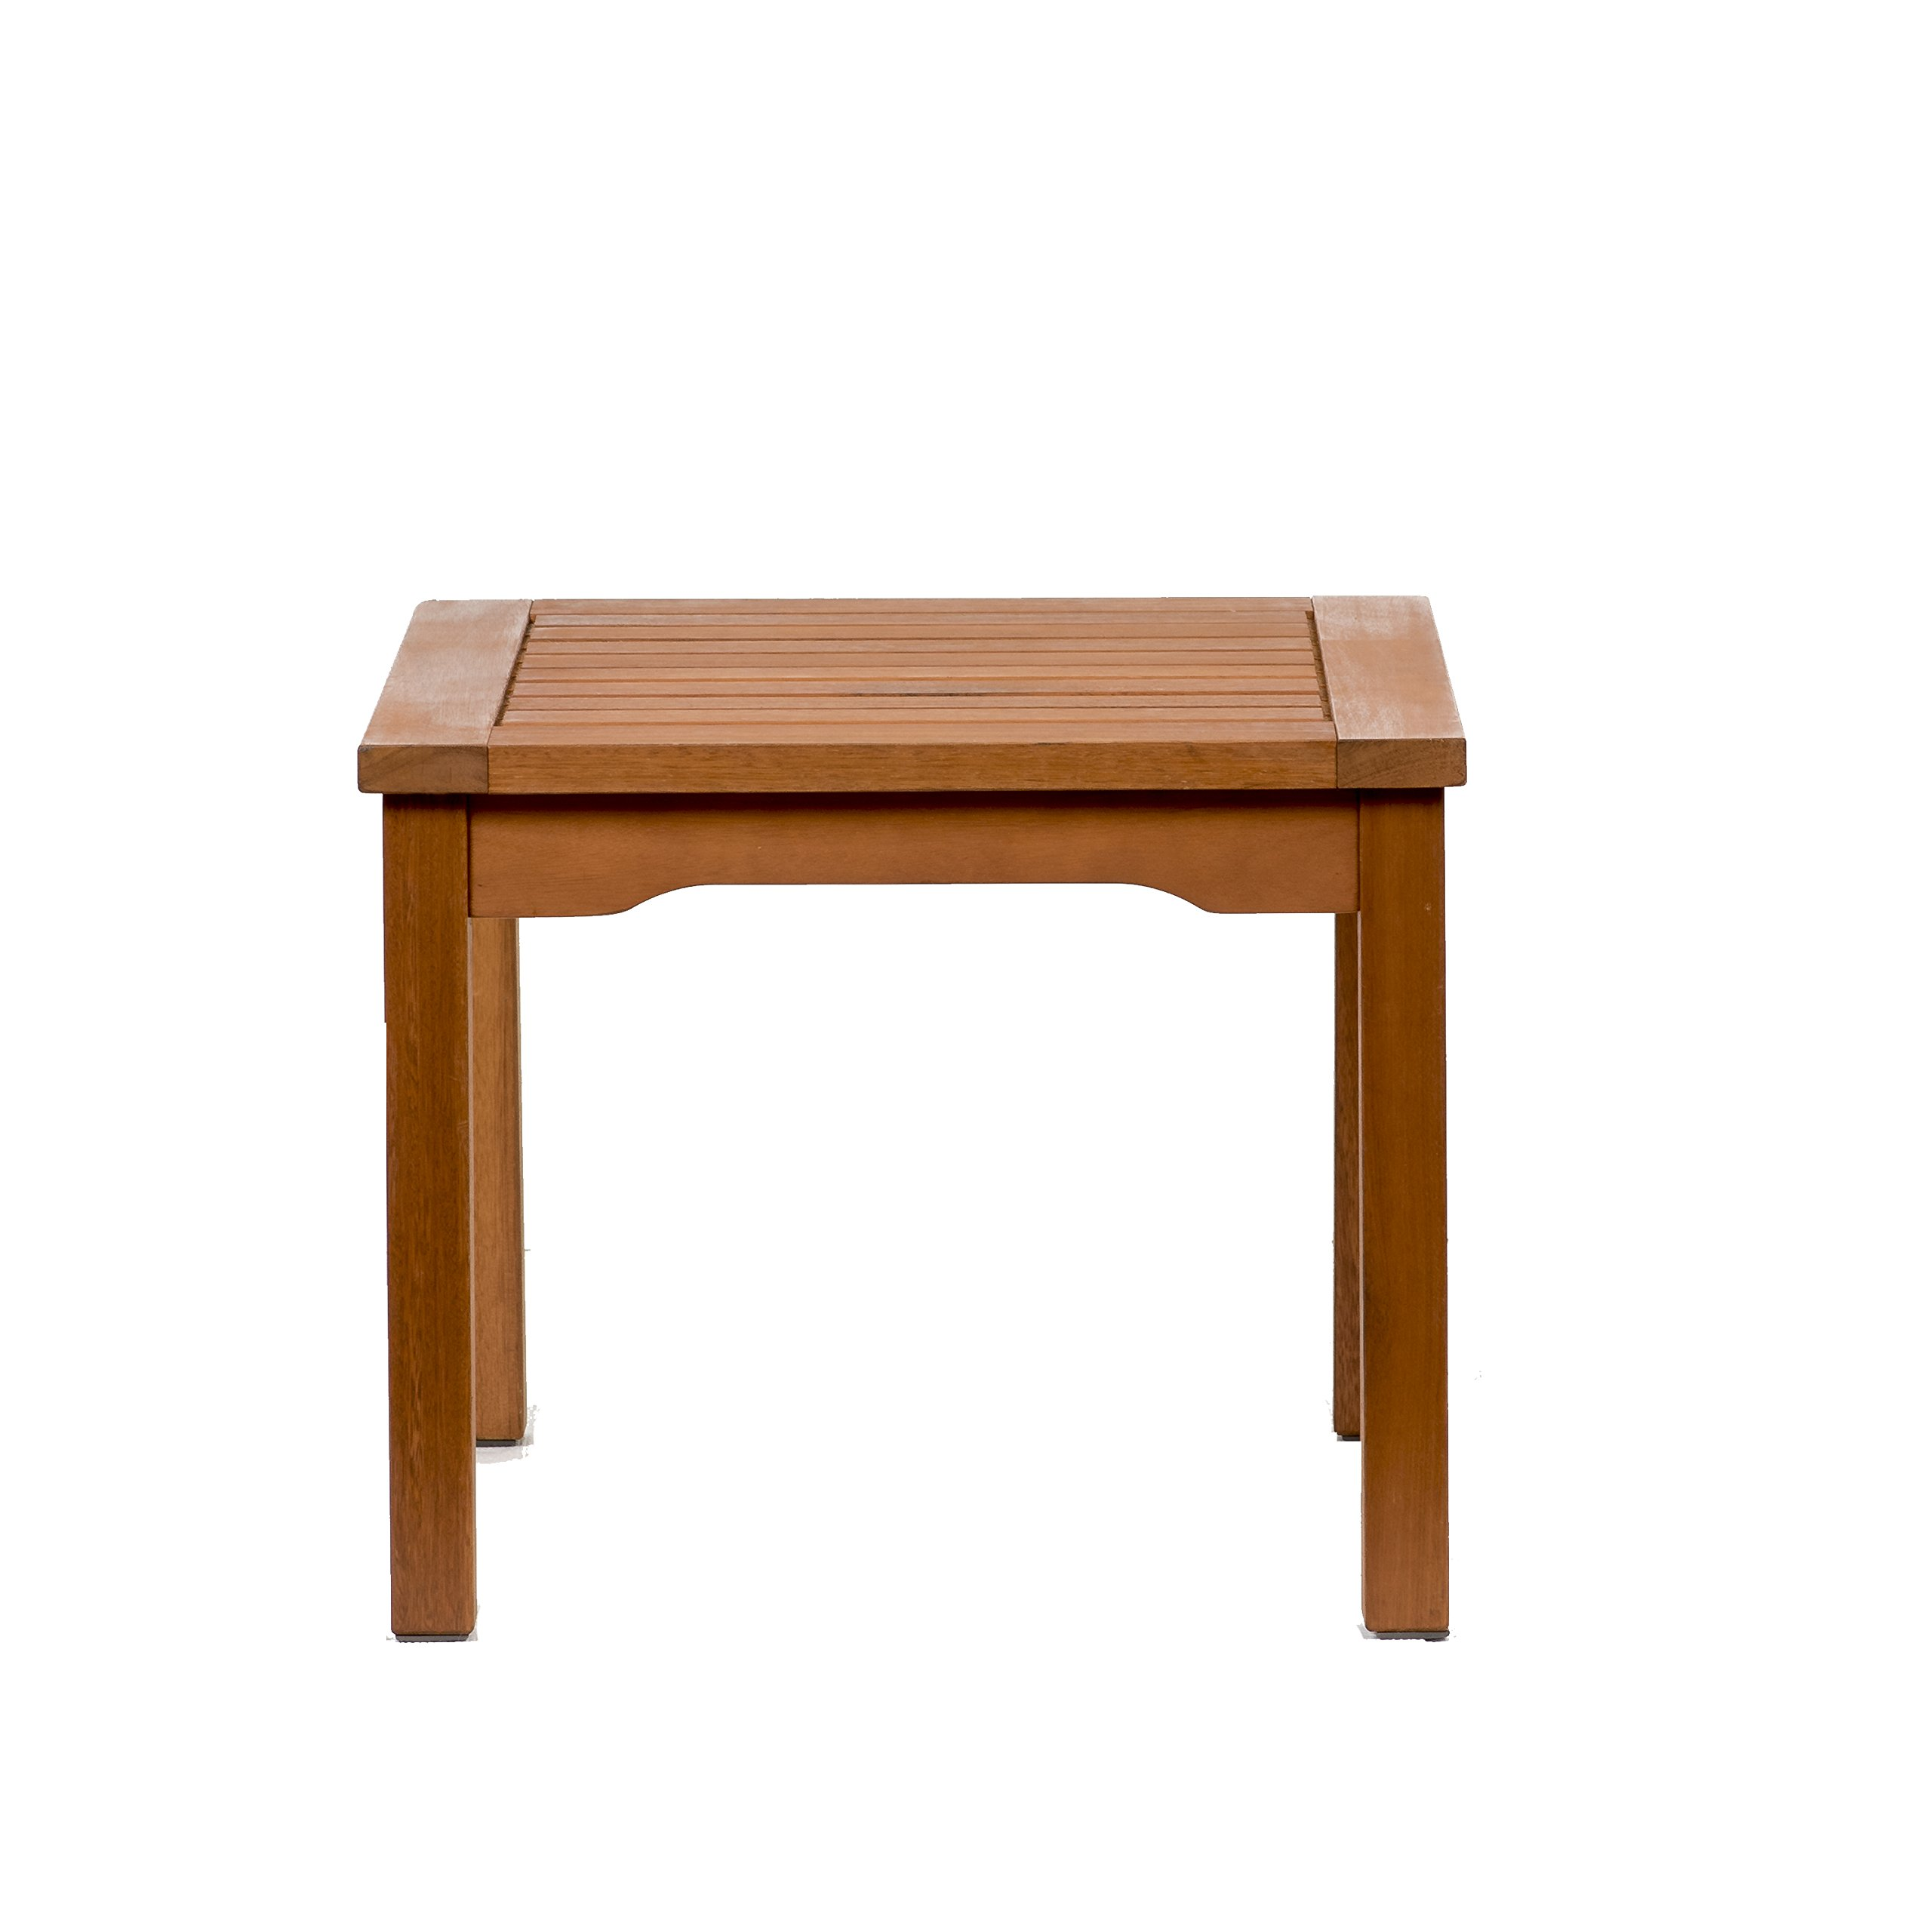 Amazonia Square and Durable Side Table  Super Quality Eucalyptus Wood  Perfect for Patio and backayard by Amazonia